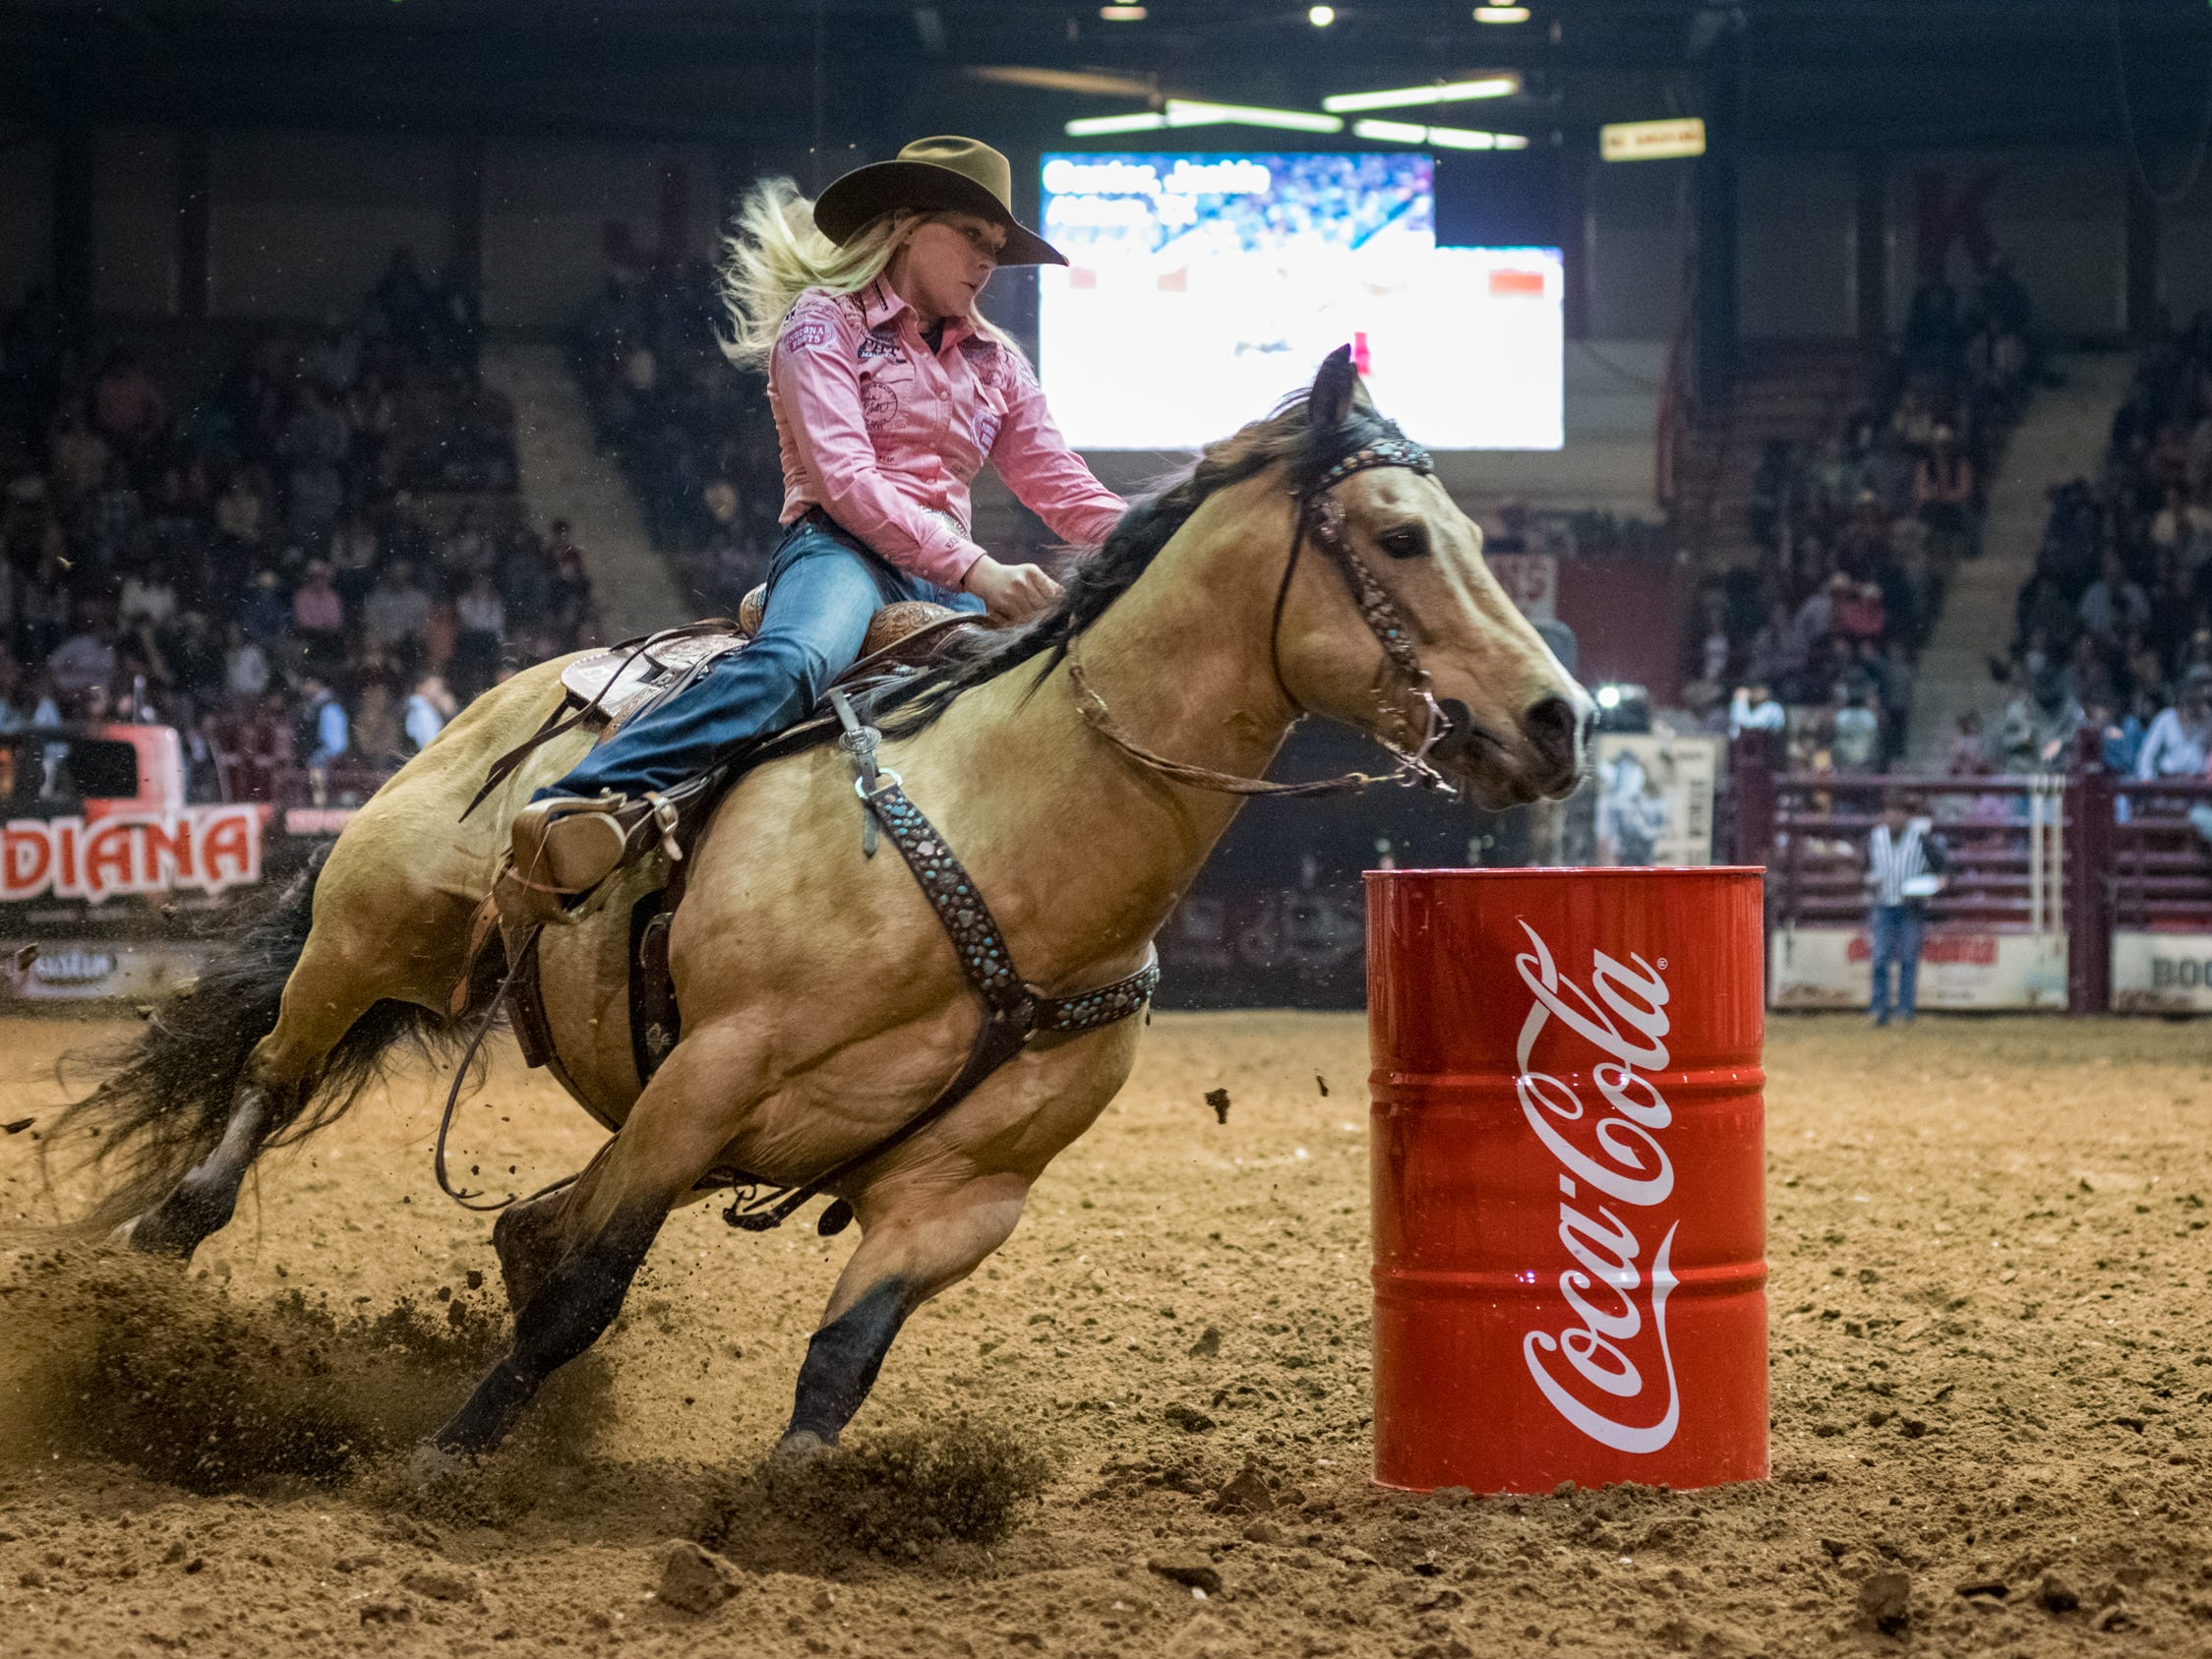 Mid Winter Fair and Pro Rodeo at Blackham Coliseum. Saturday, Jan. 12, 2019.